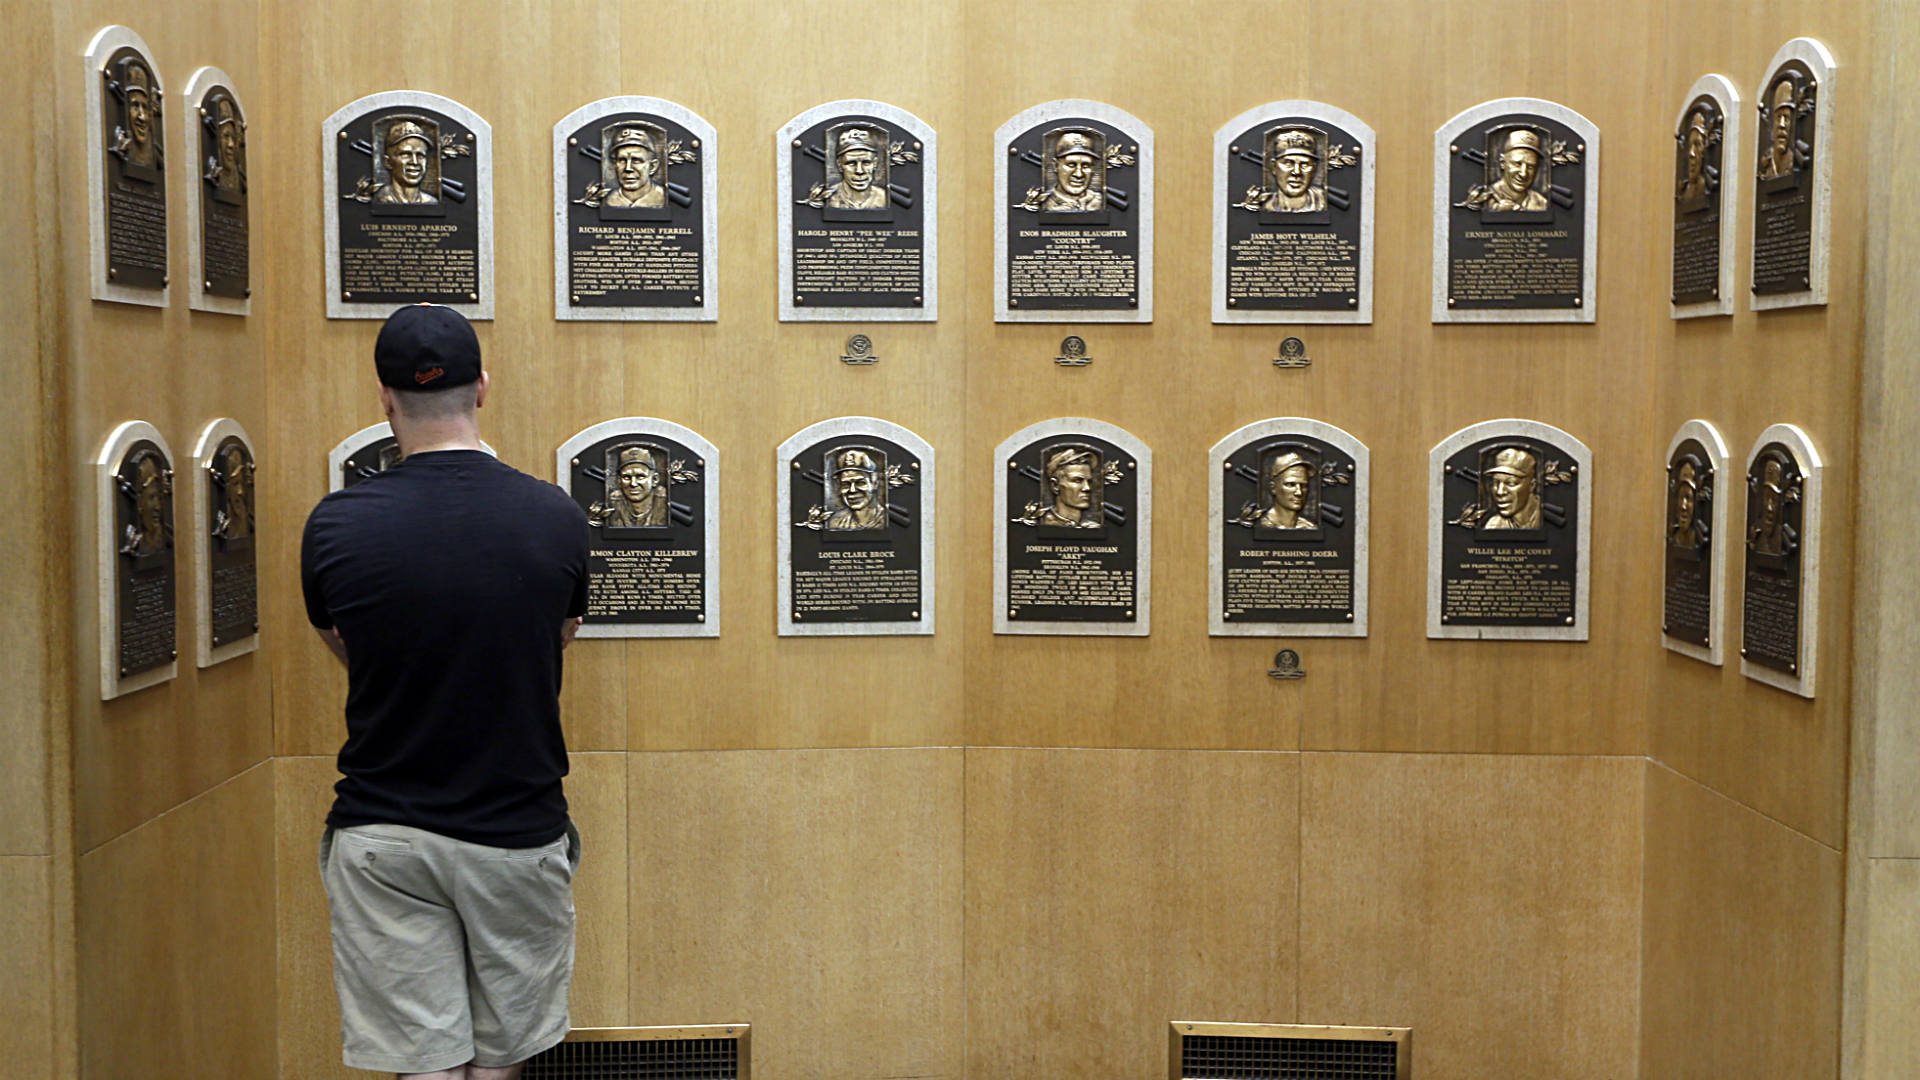 Hall of Fame: Tim Raines, 2 others get call to Cooperstown